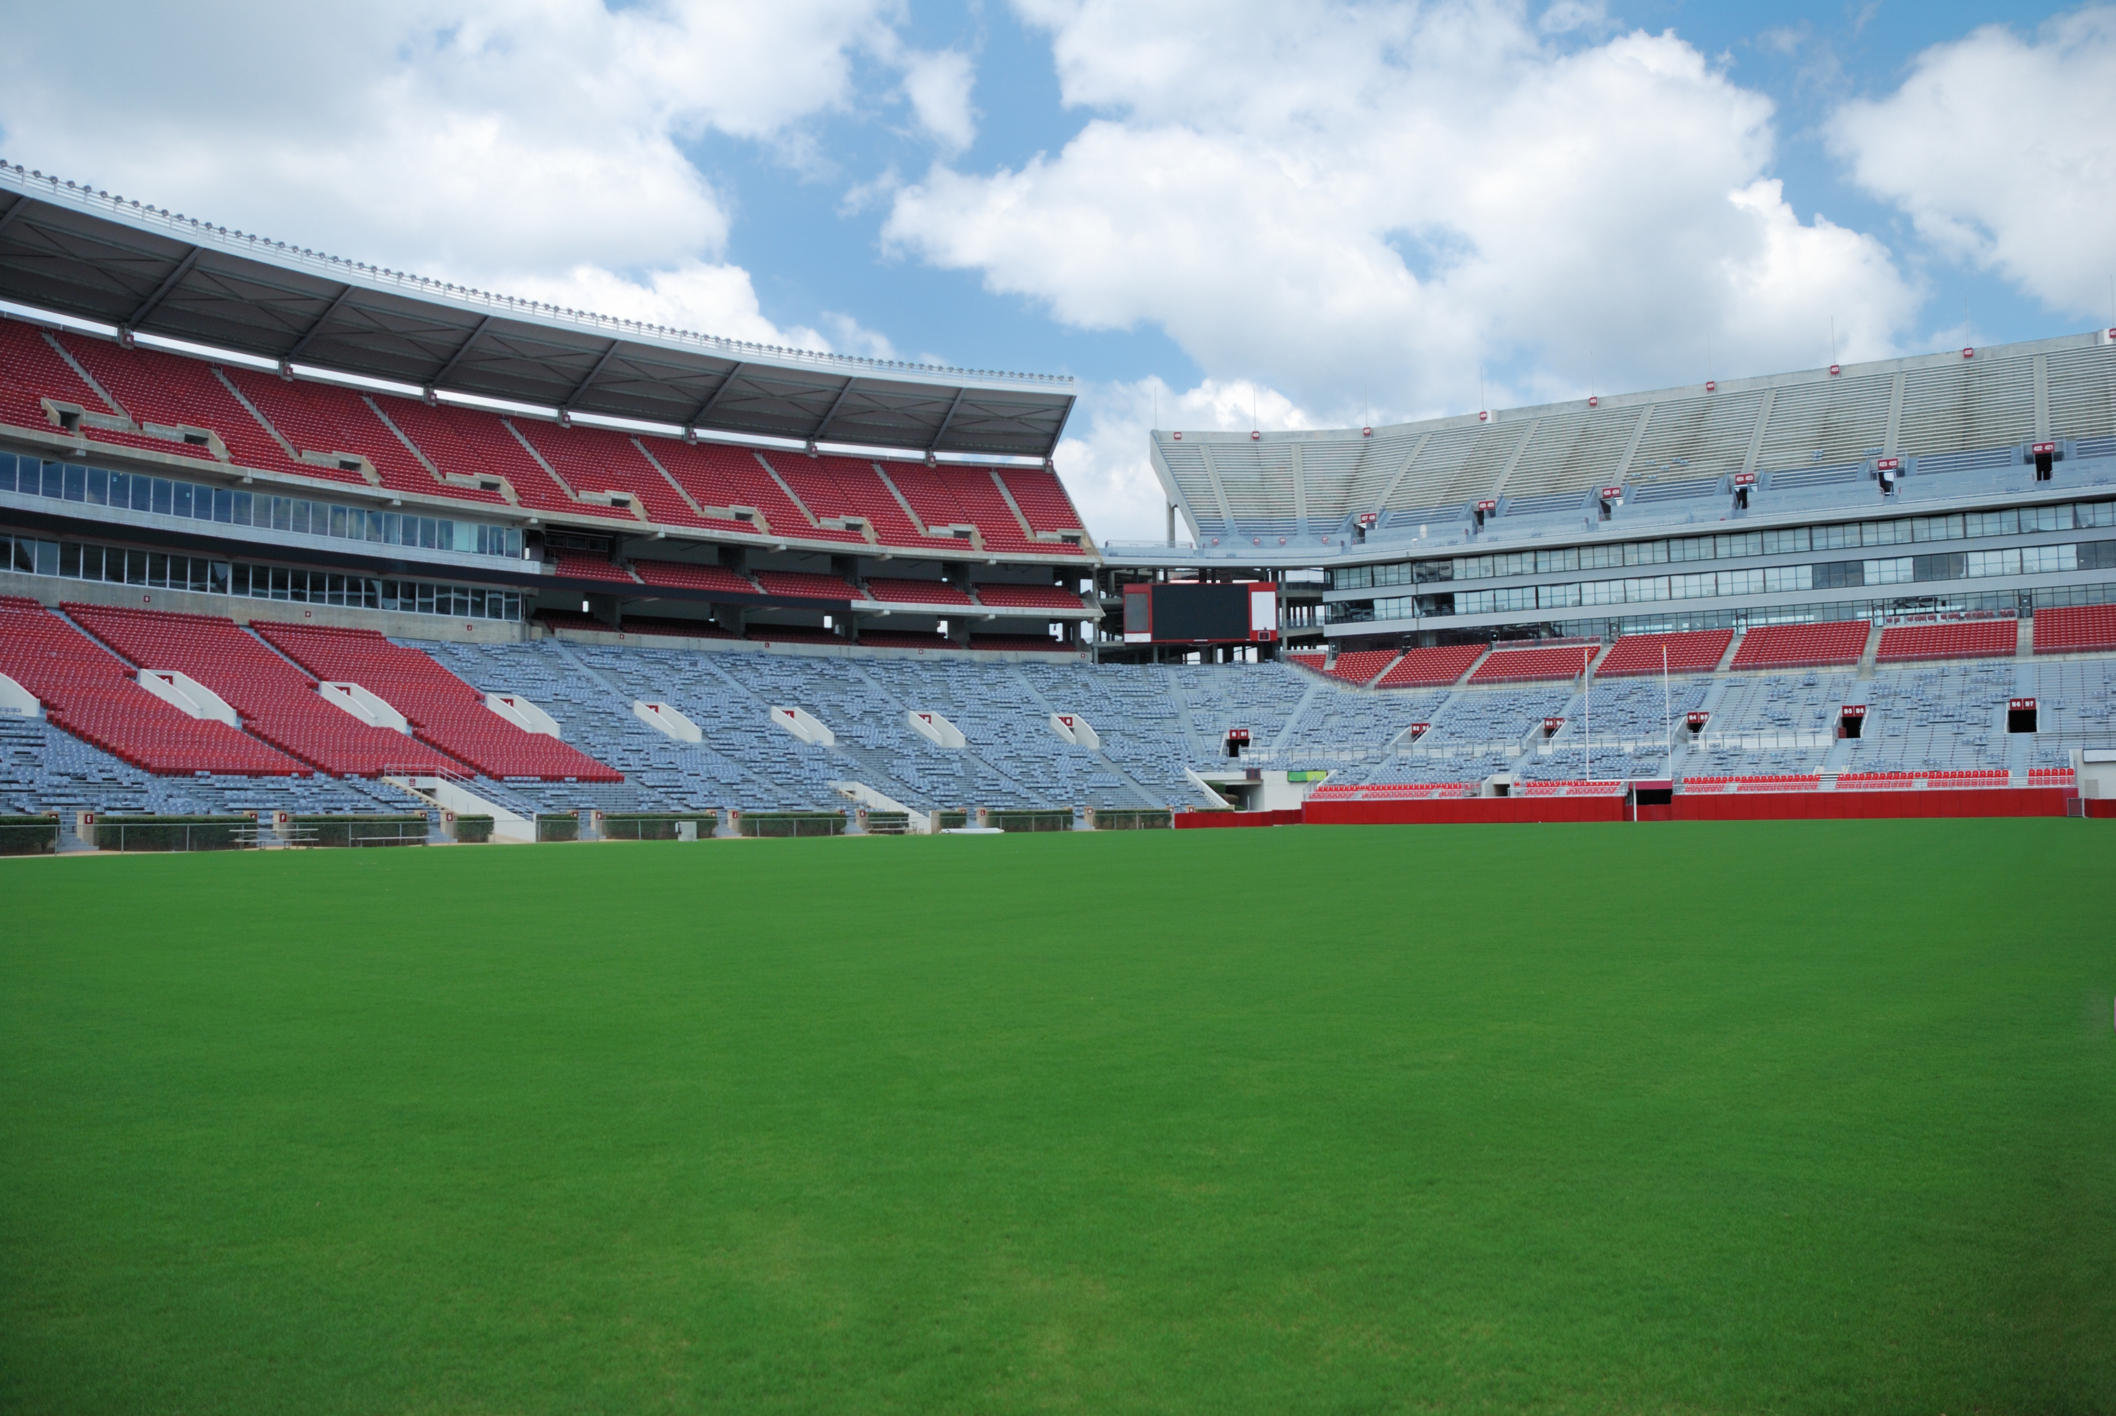 Football stadium with field ready to be lined.